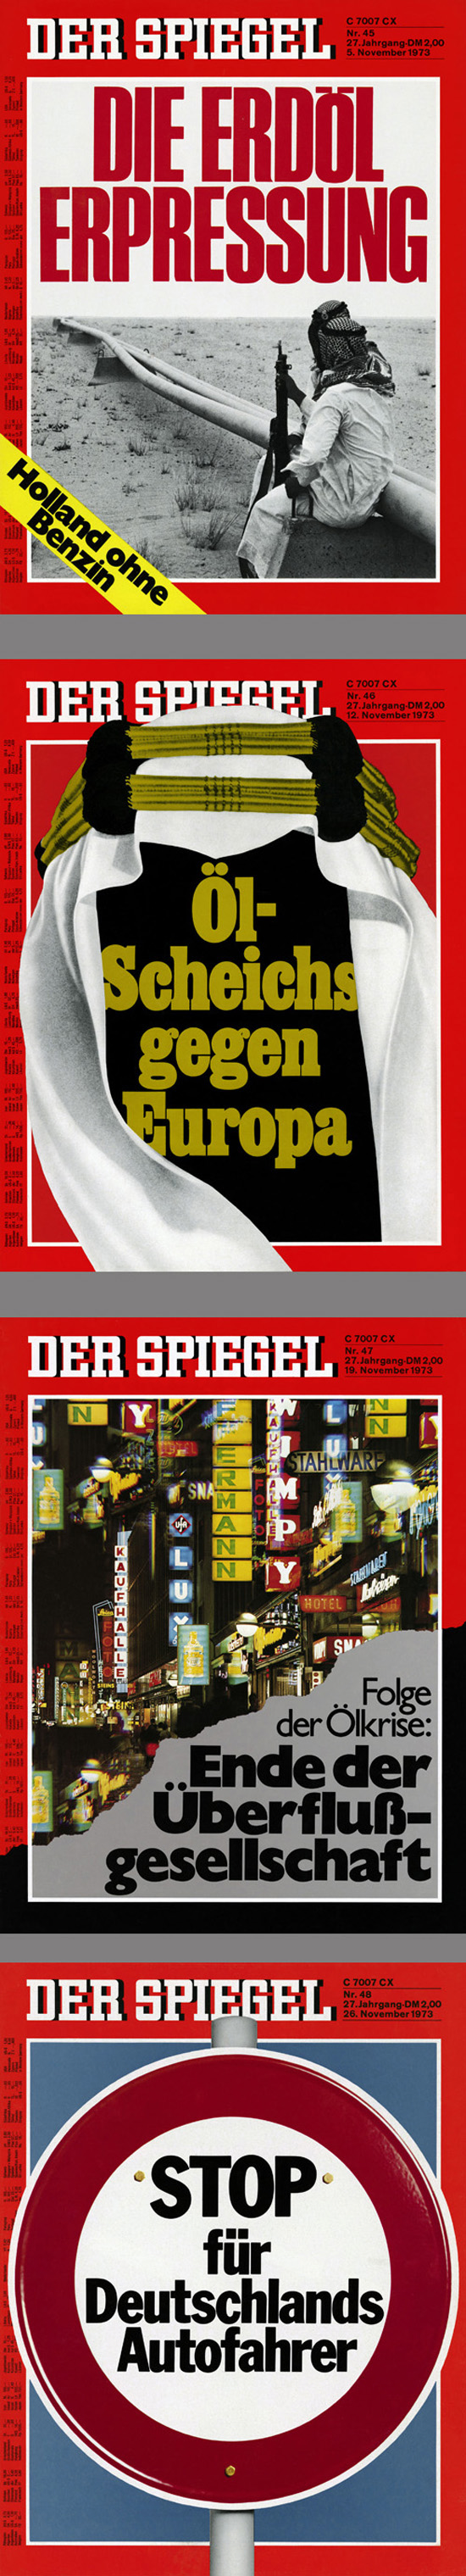 <i>Spiegel</i> Covers on the Oil Crisis (November 1973)